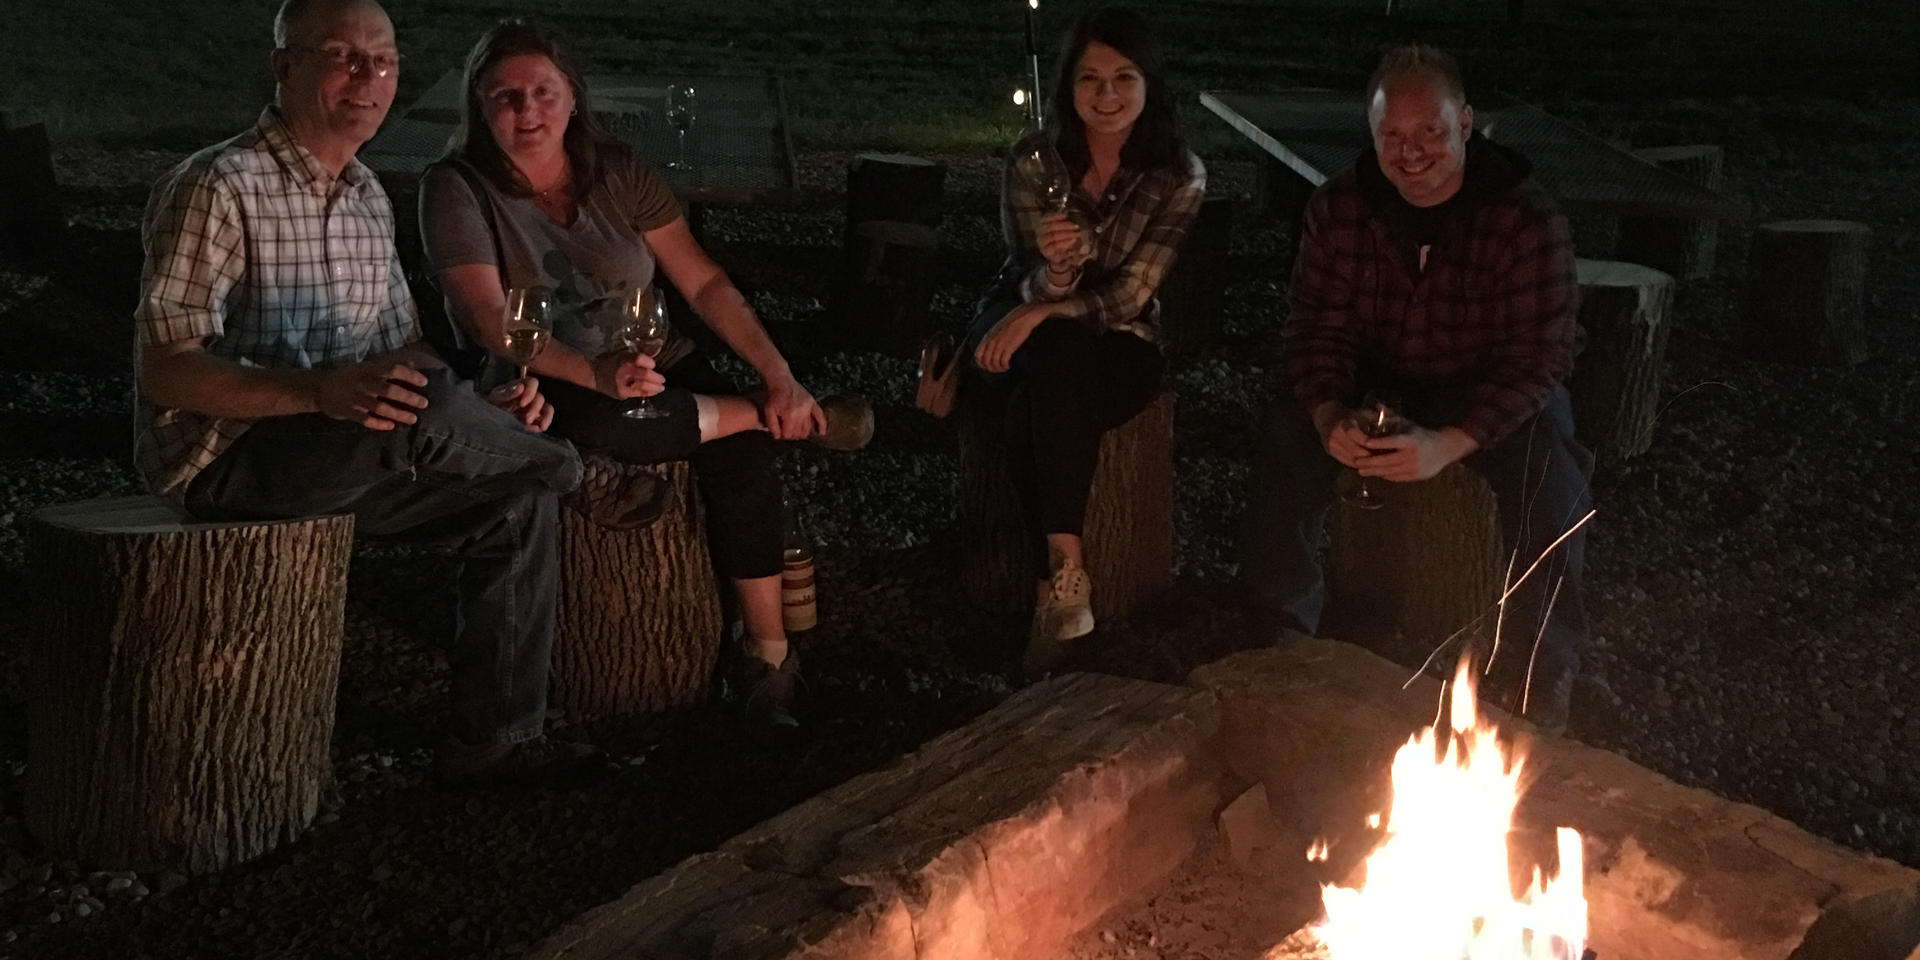 Hang out around the fire with friends!